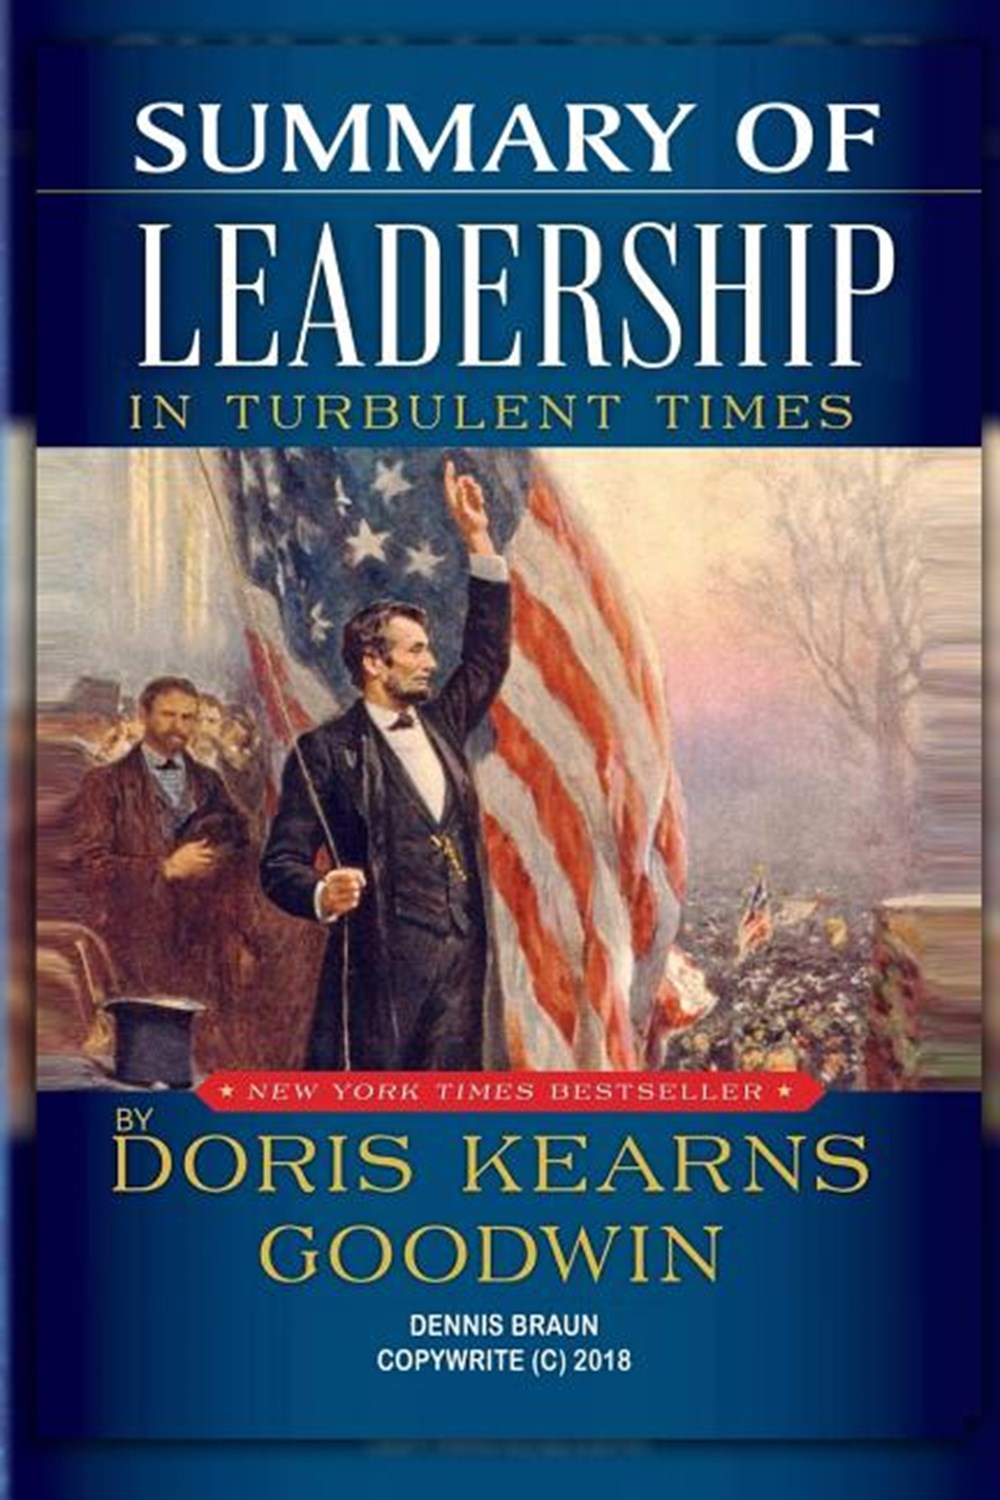 Summary of Leadership in Turbulent Times by Doris Kearns Goodwin